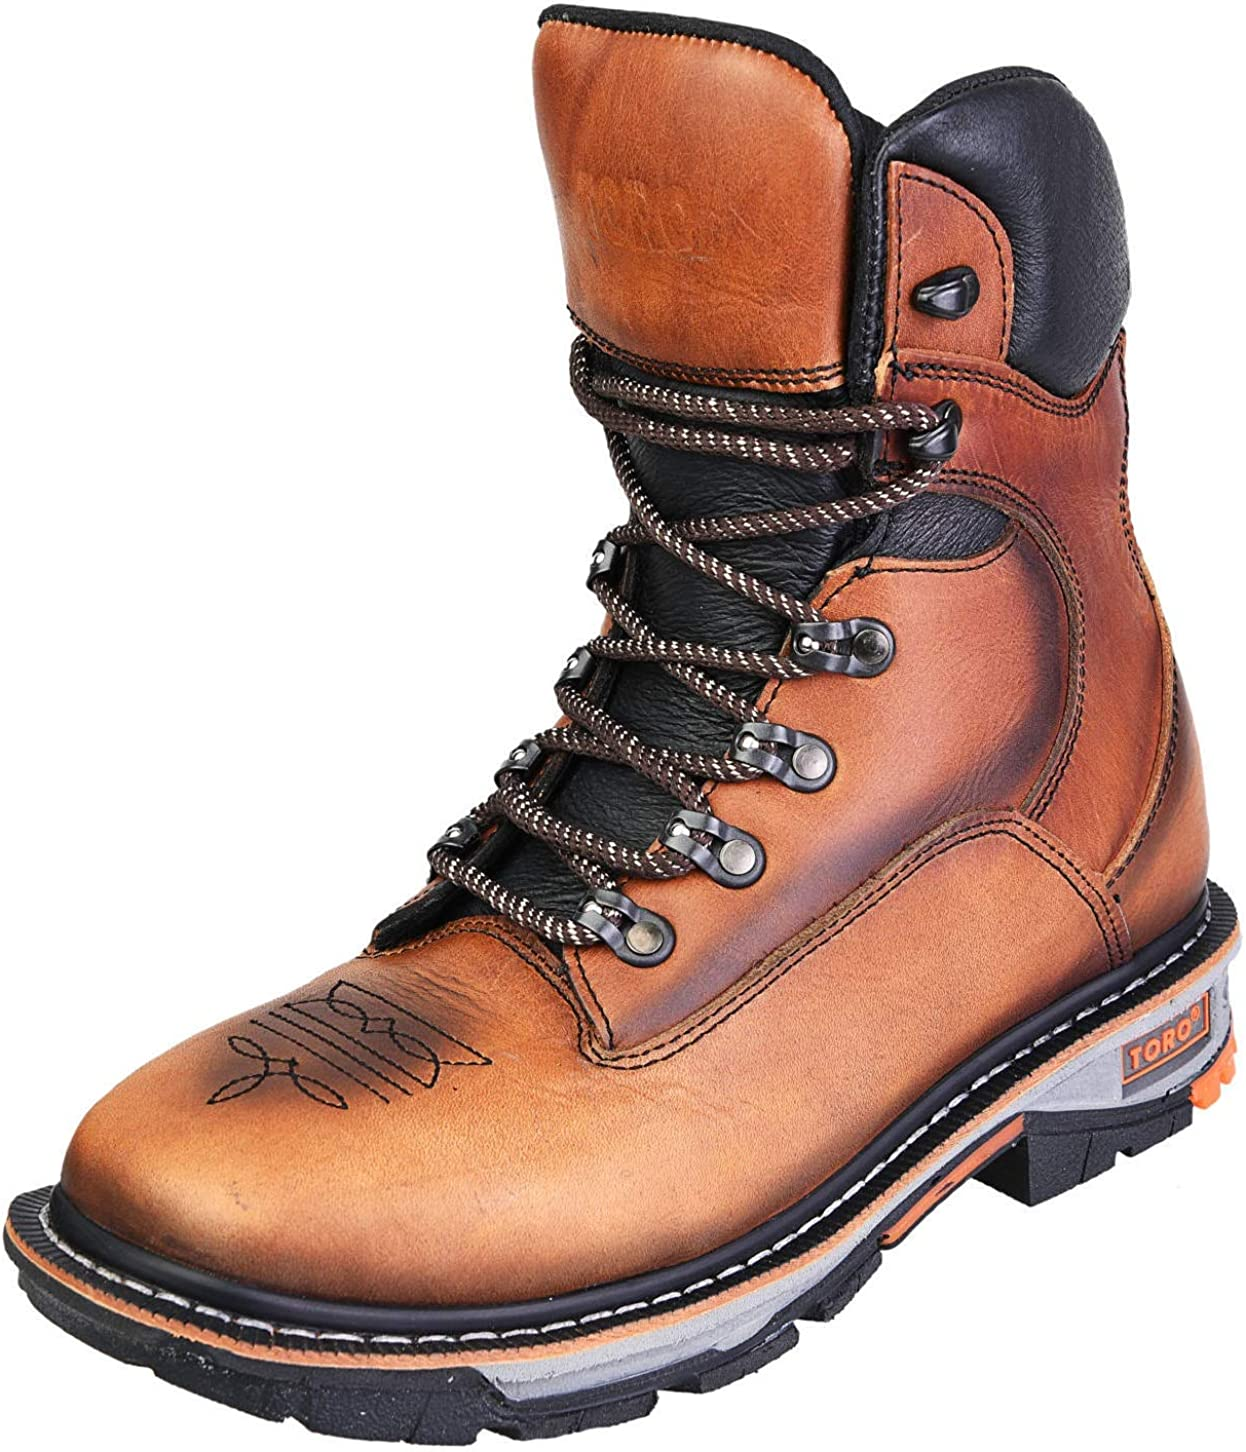 Industrial Work Boots